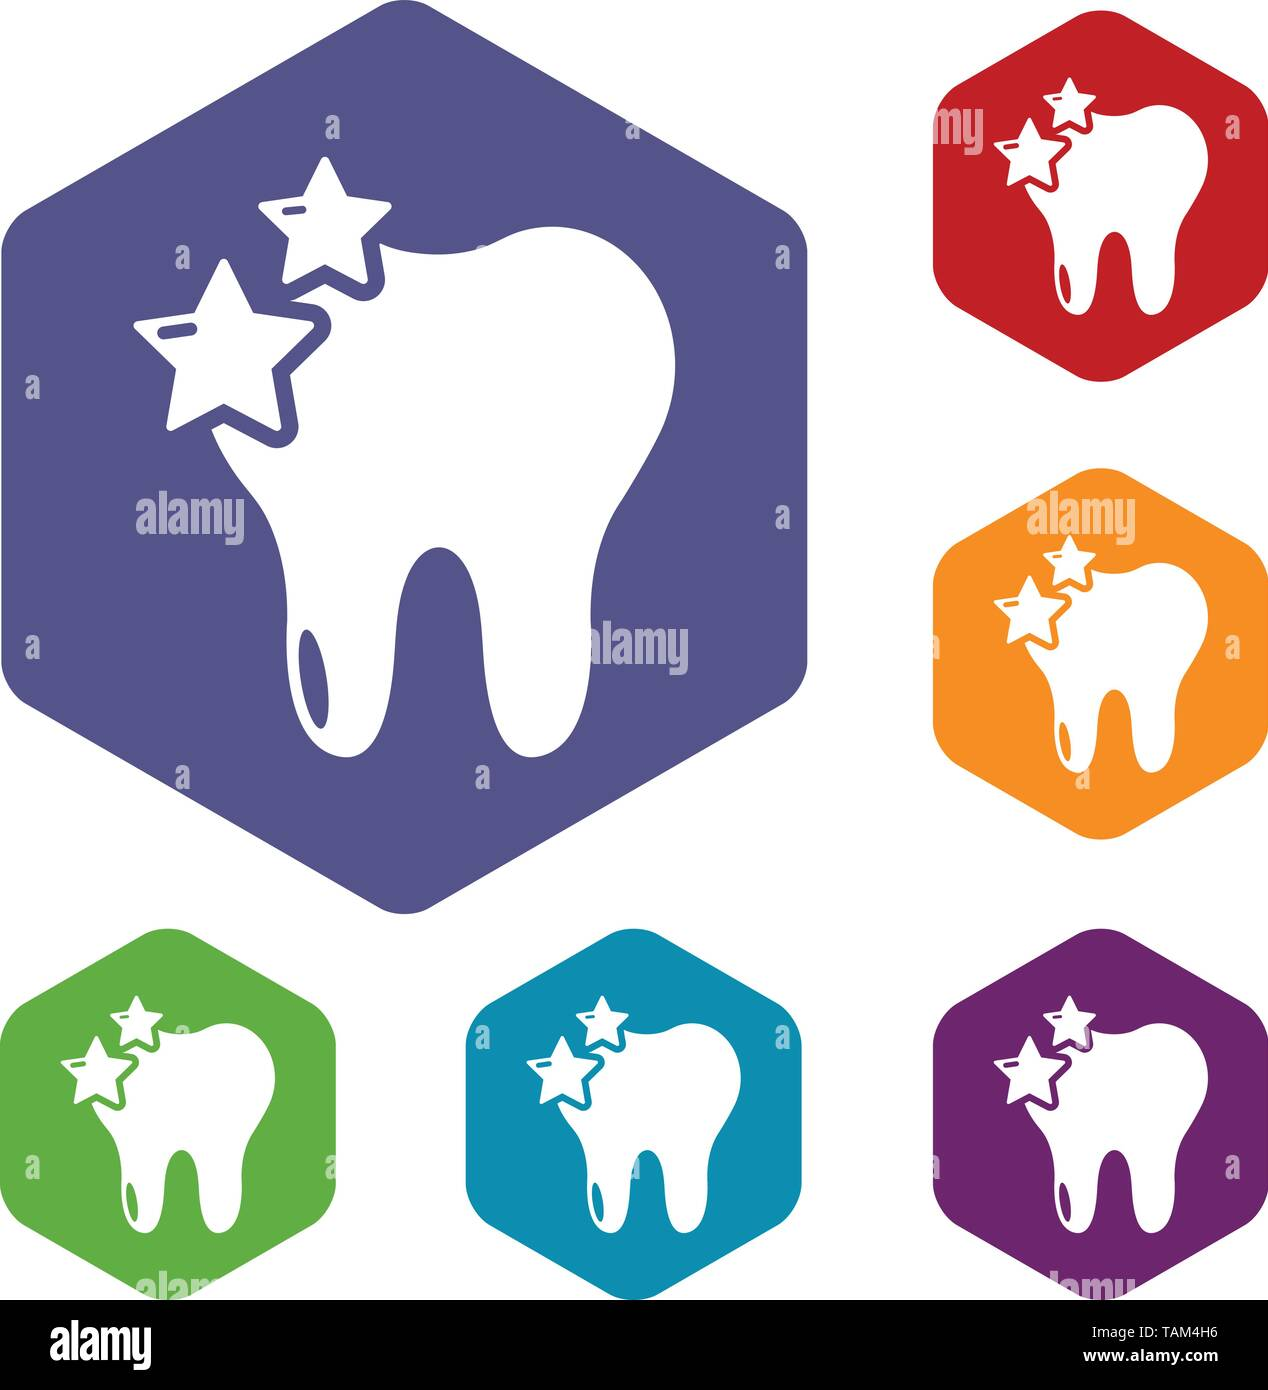 Tooth icons vector hexahedron - Stock Image